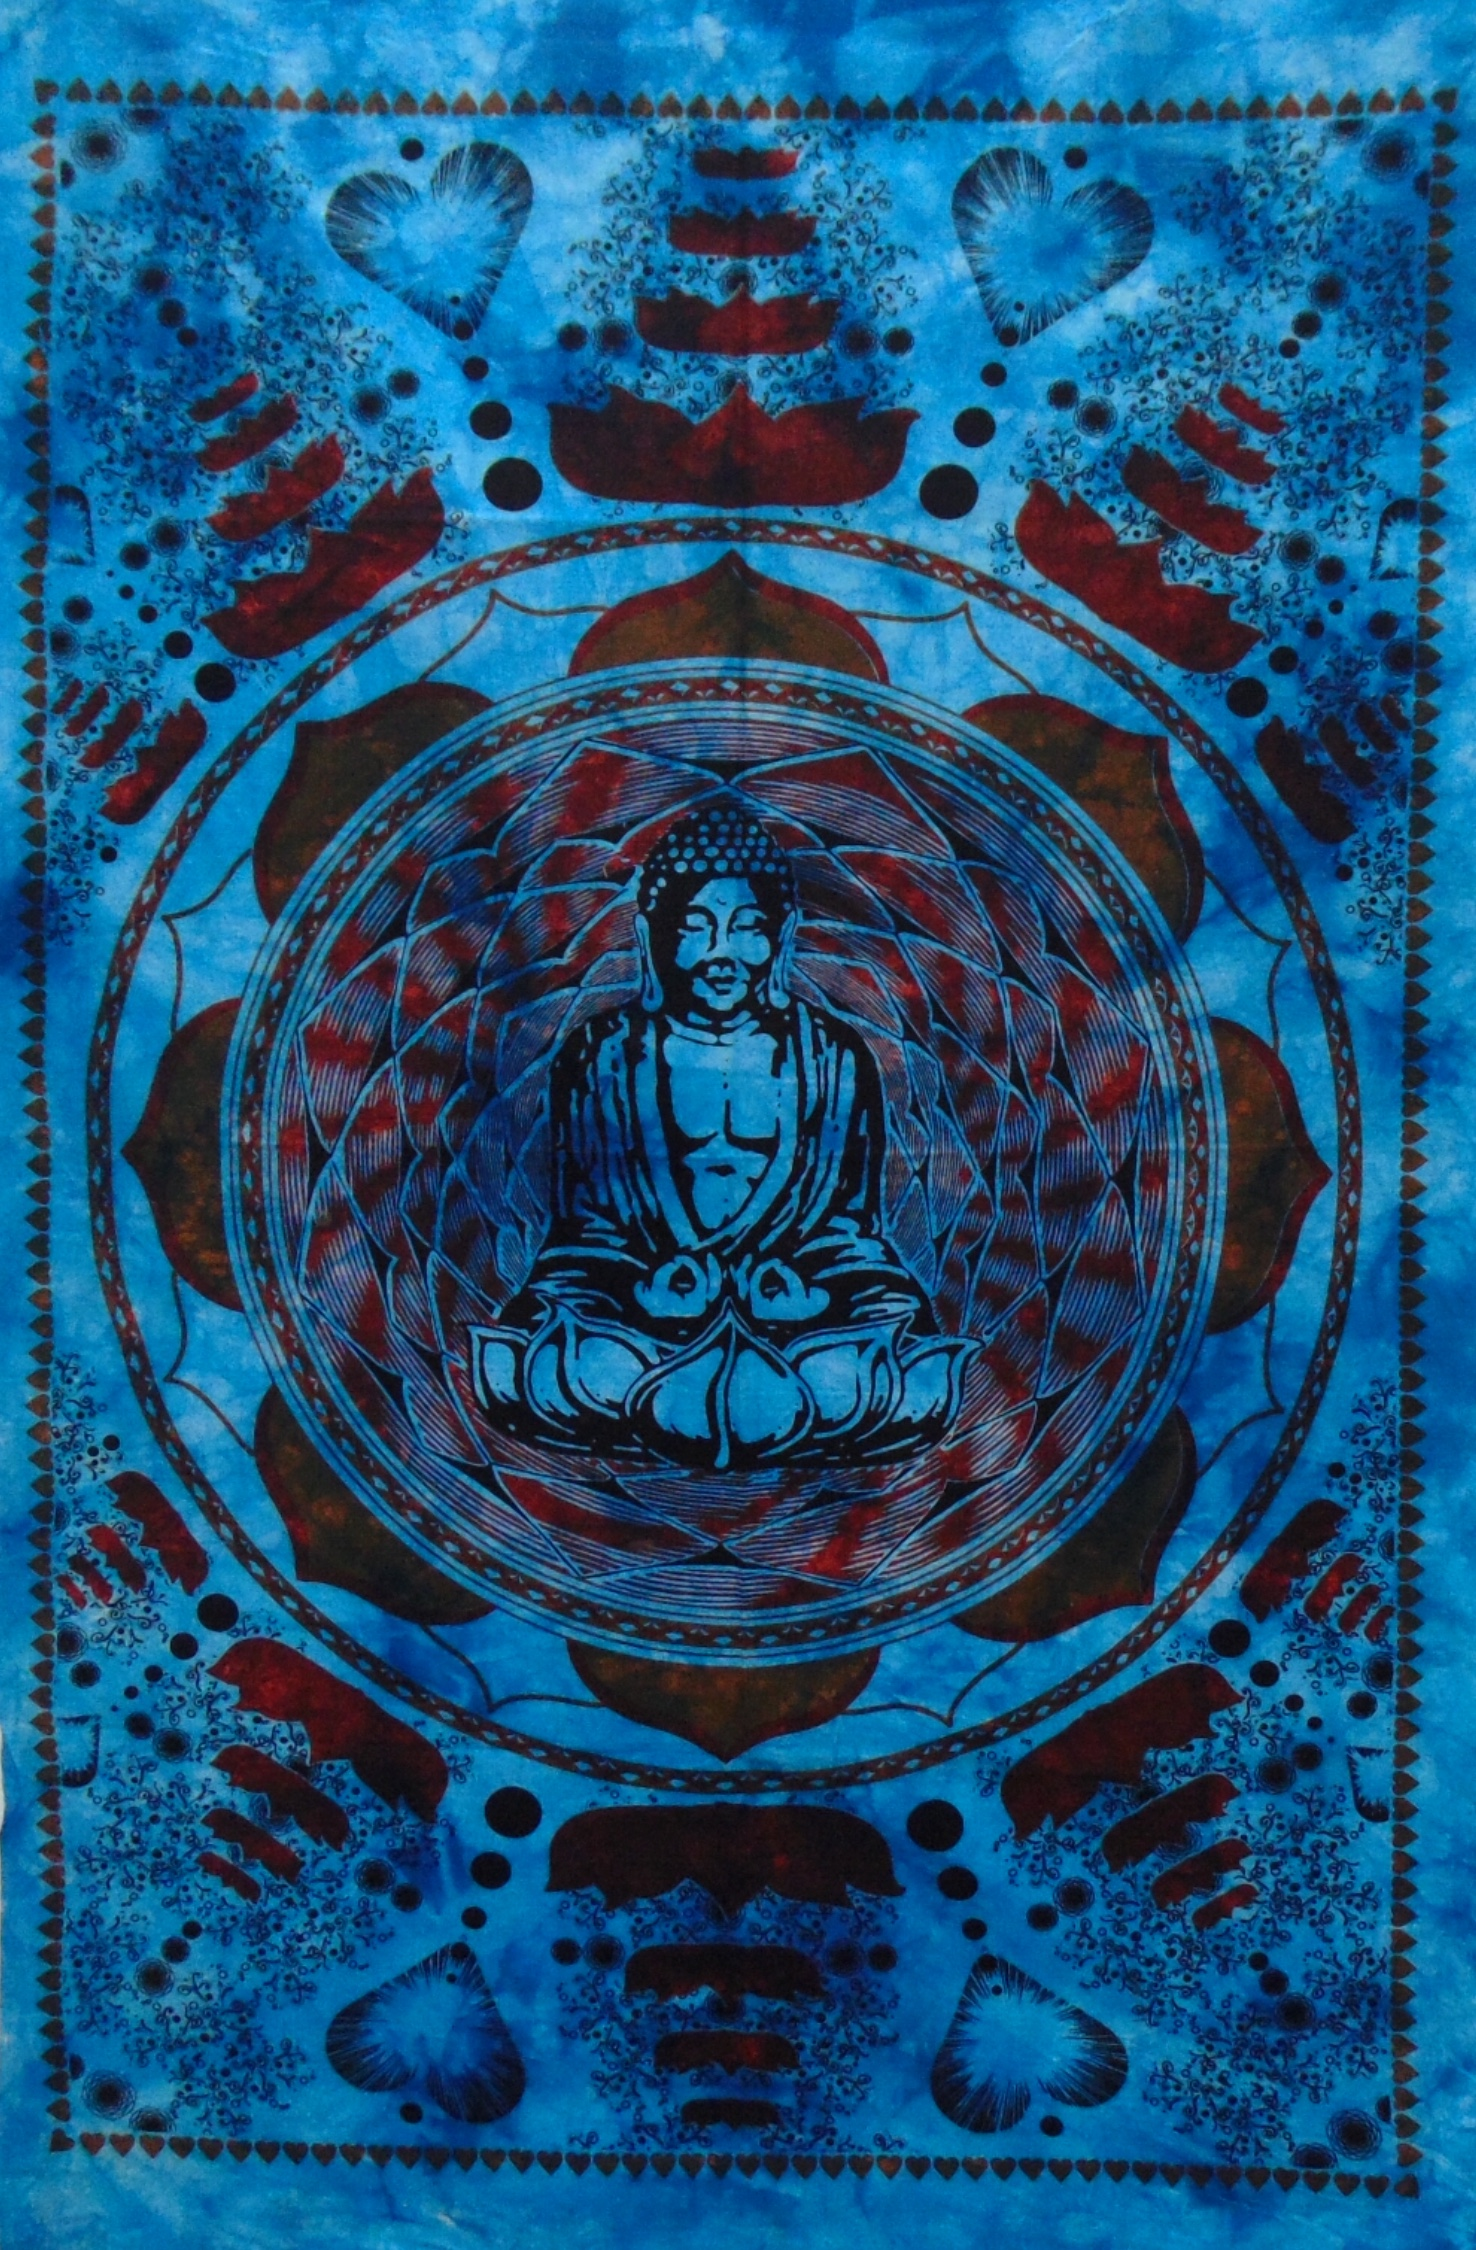 Heyrumbh Handicrafts Lotus Buddha Tapestry Wall Hanging Cotton Poster(Turquoise, 40 X 30 Inches)